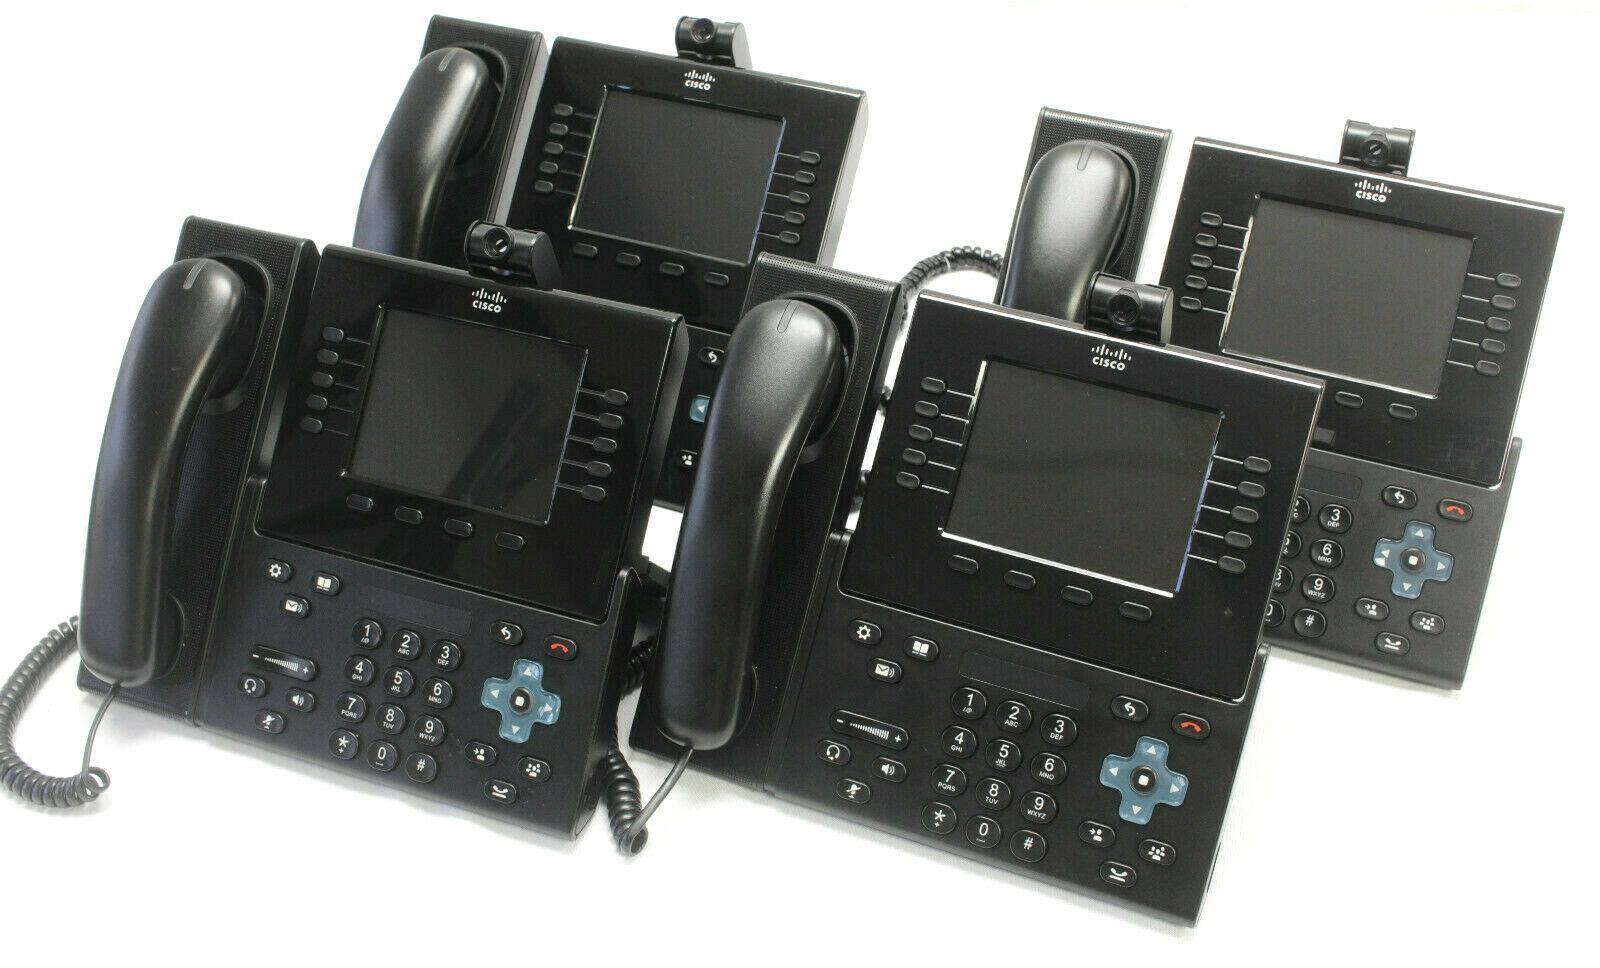 Cisco CP-9951-CL-K9 Unified Video IP Phone